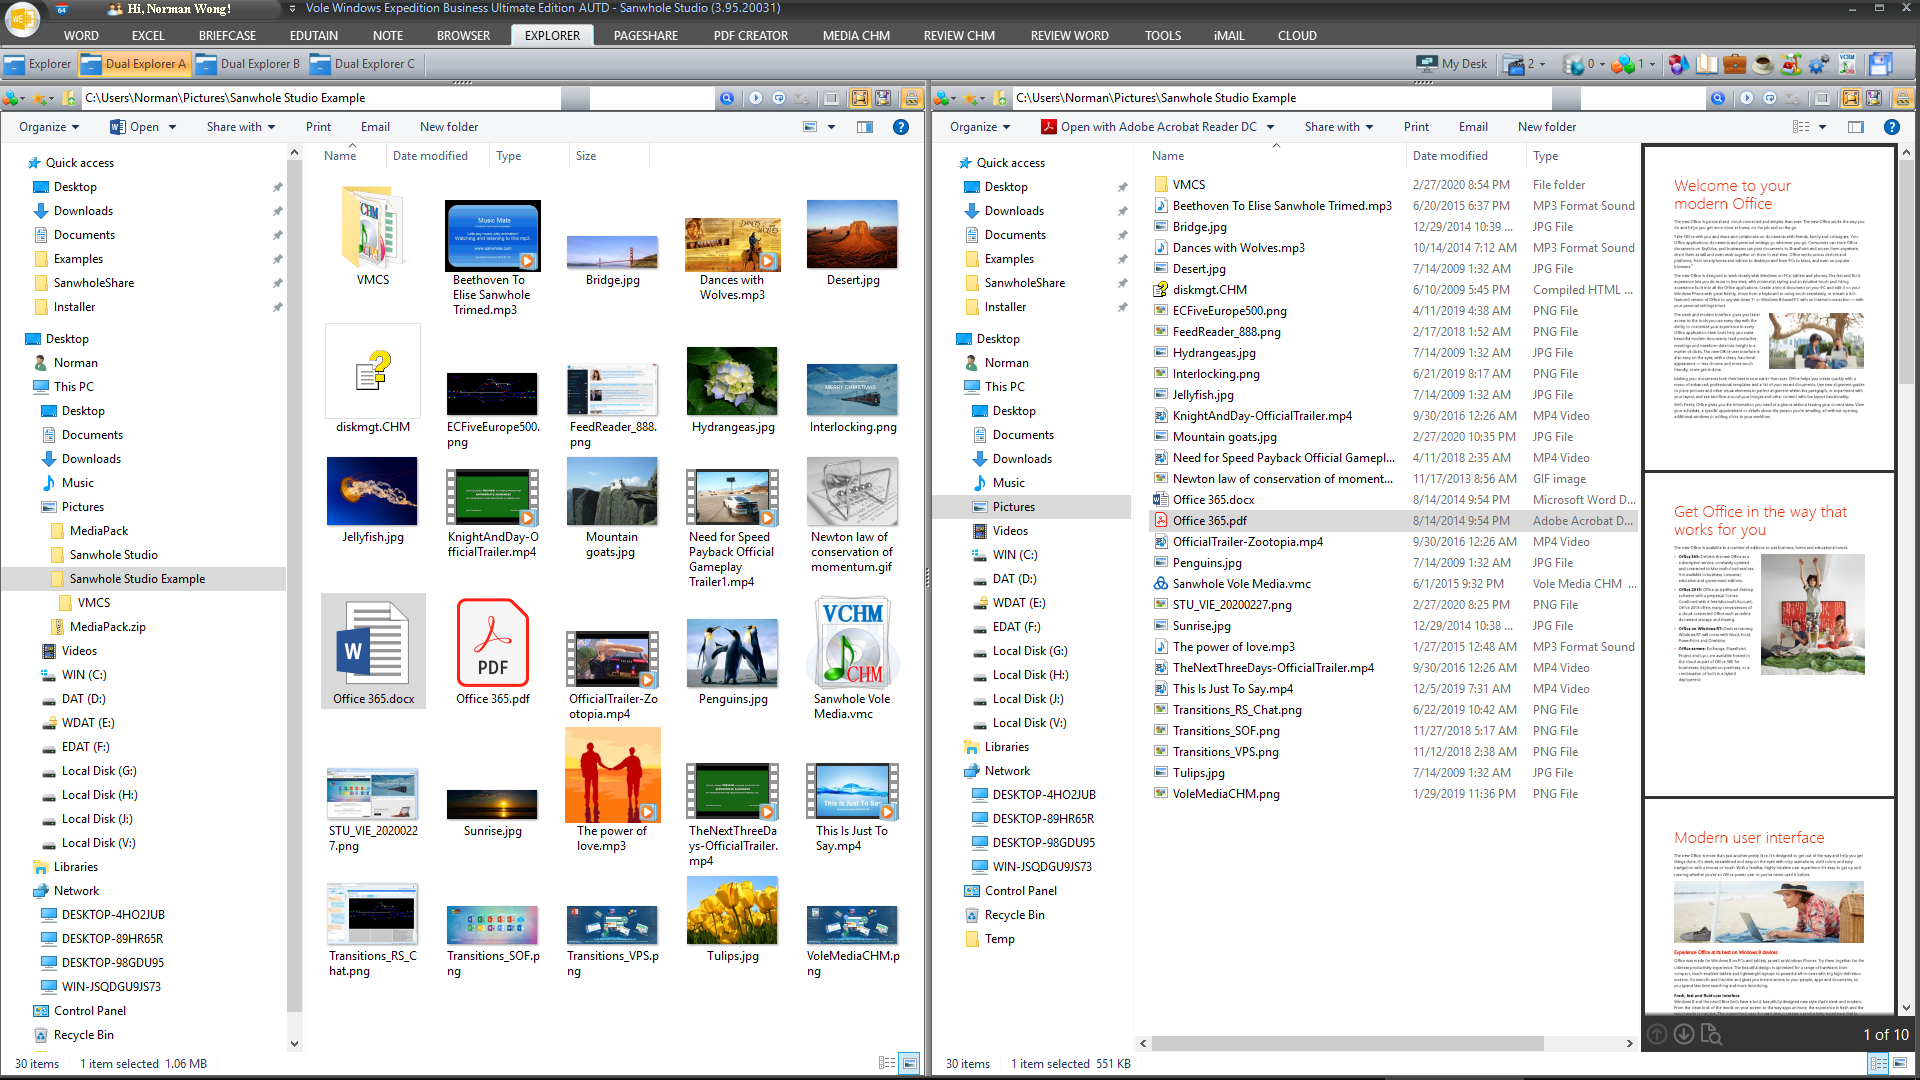 File Management Software, Vole Windows Expedition Ultimate Edition Screenshot